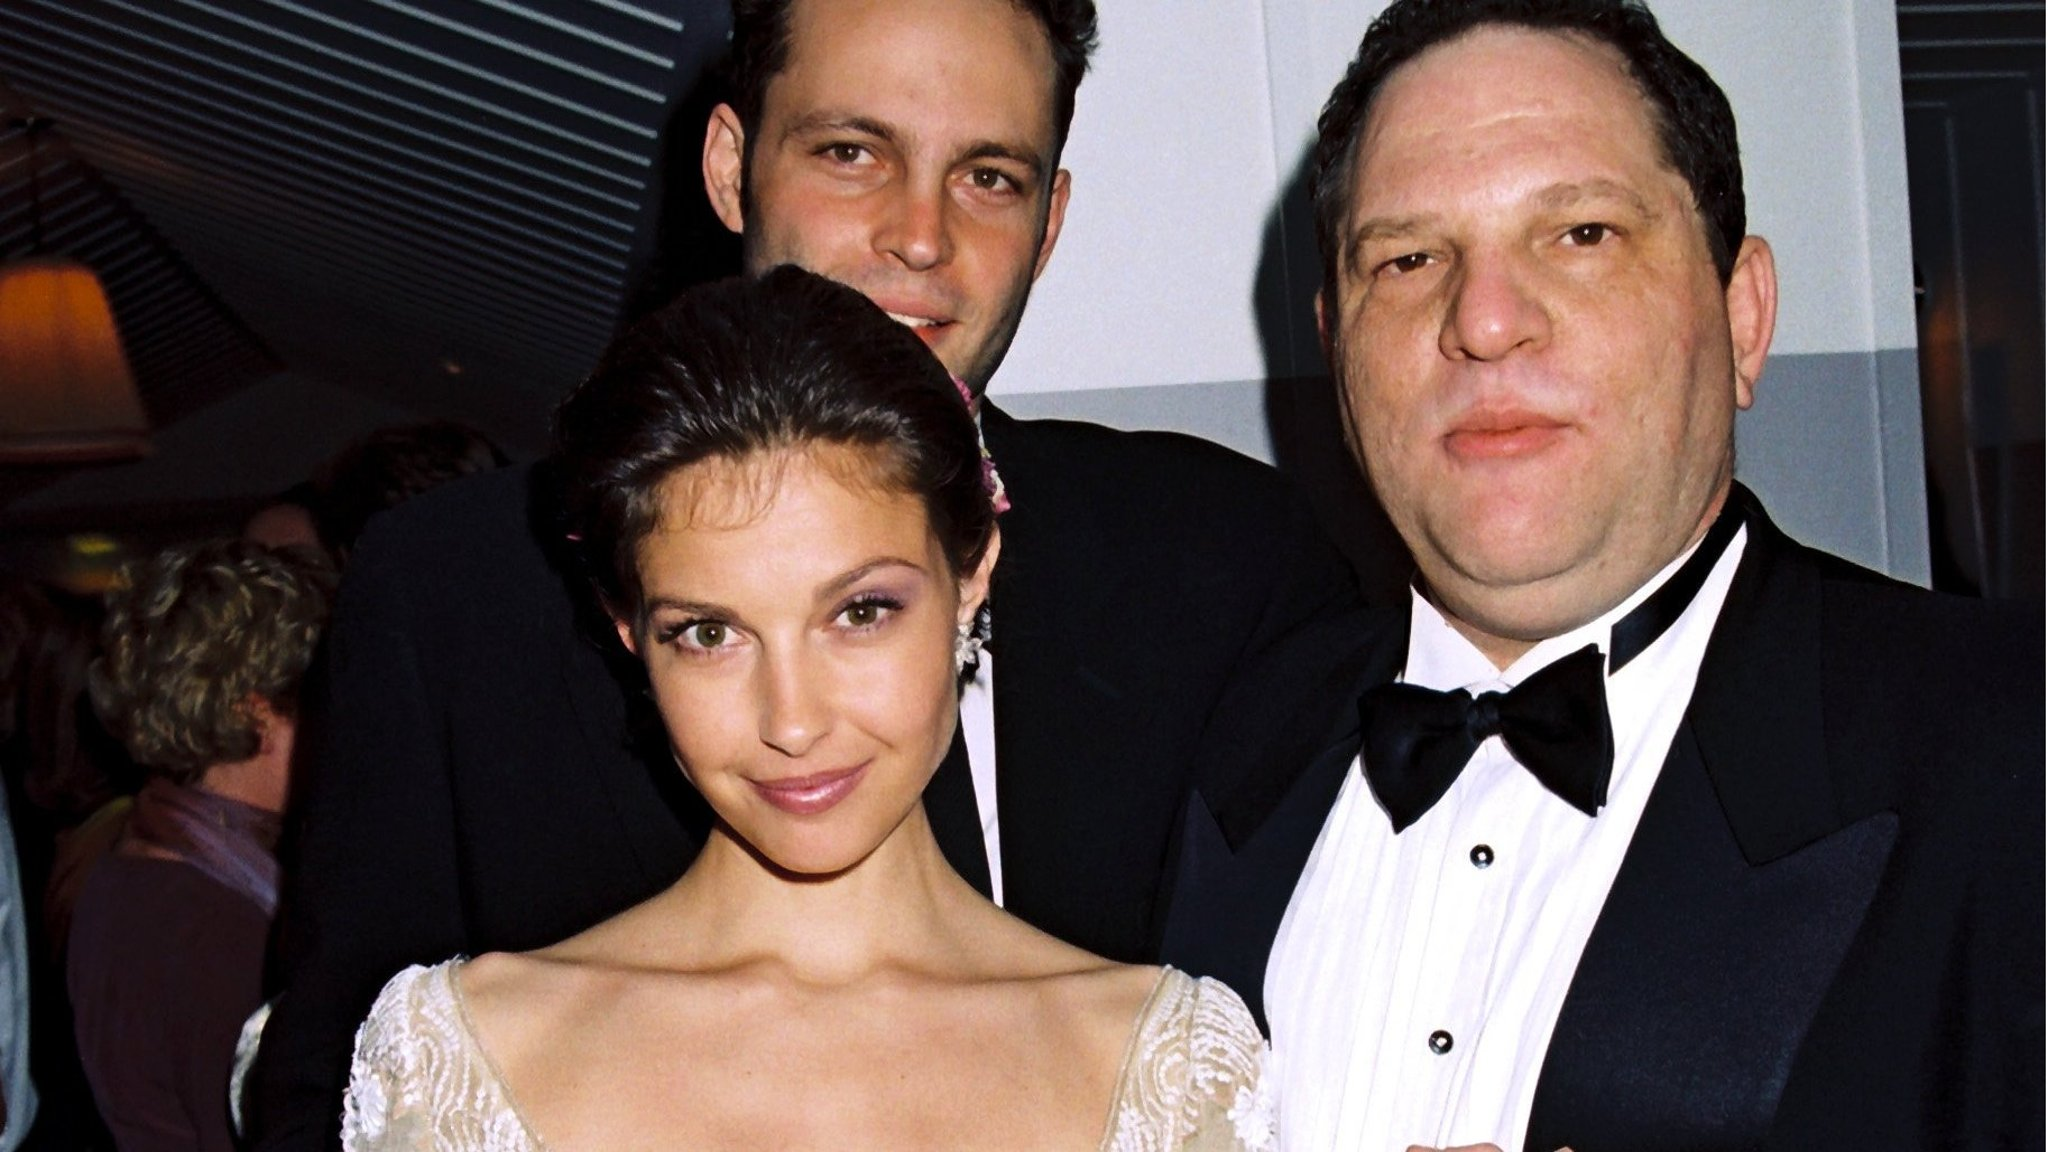 Time S Up For Harvey Weinstein And His Creepy Ilk Financial Times